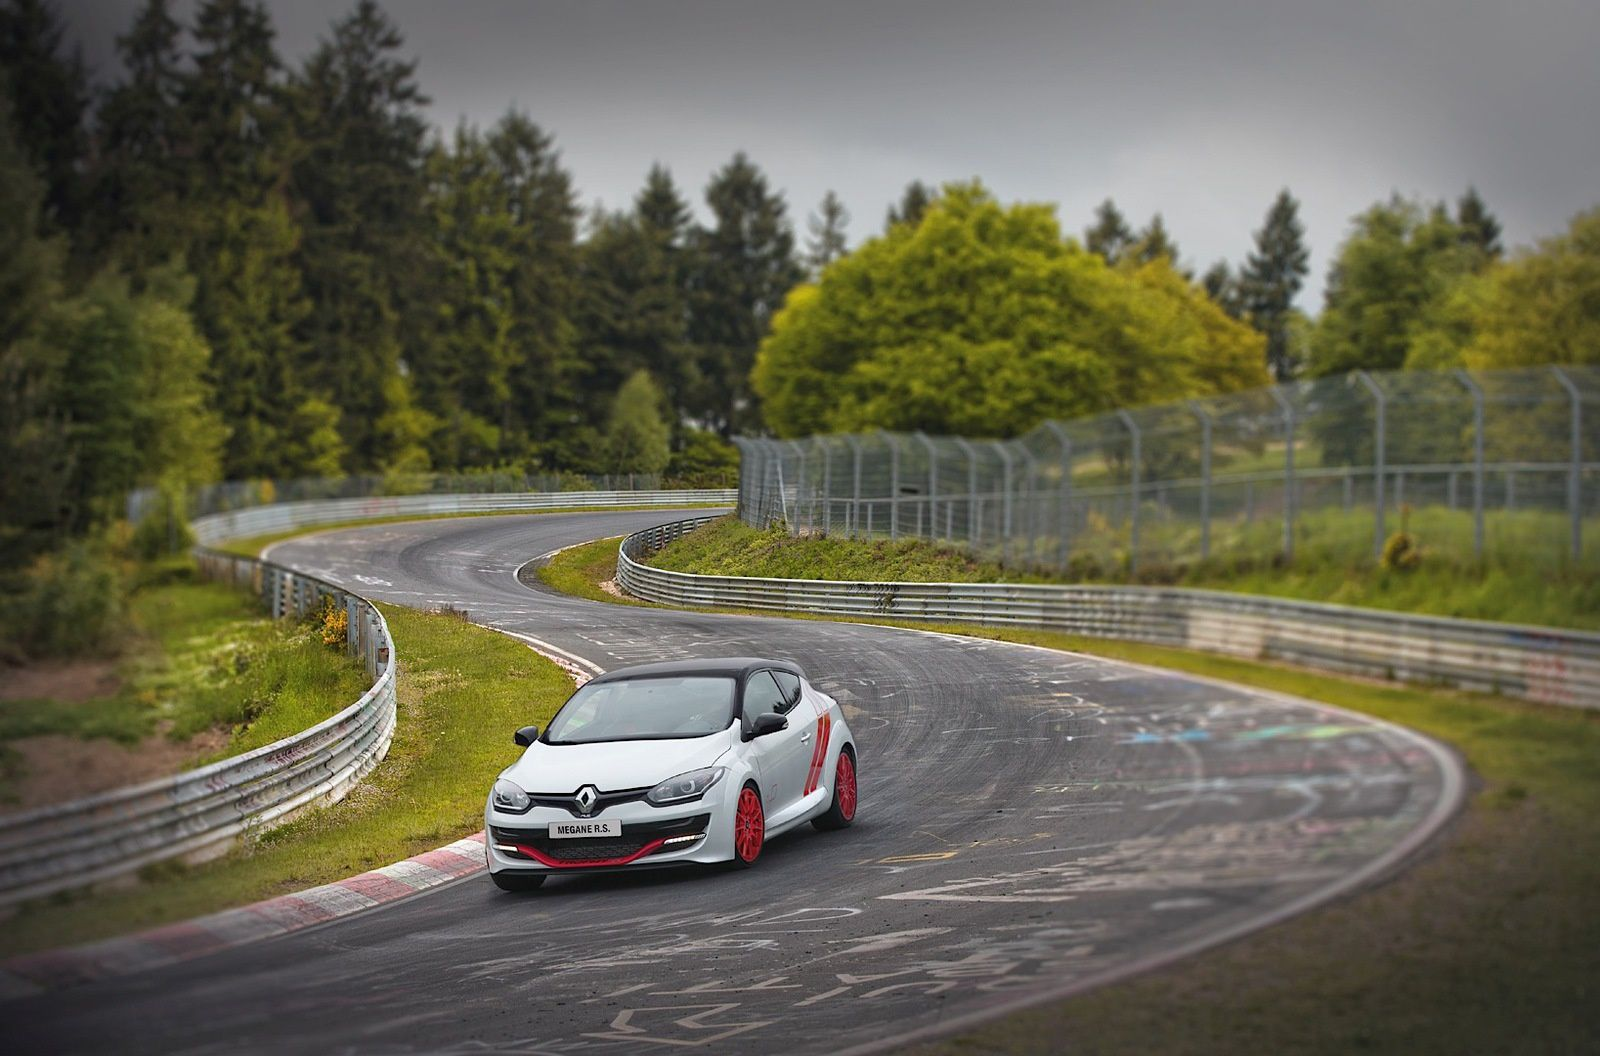 THE RENAULT MEGANE SMOKED THE NORDSCHLEIFE - NURBURGRING